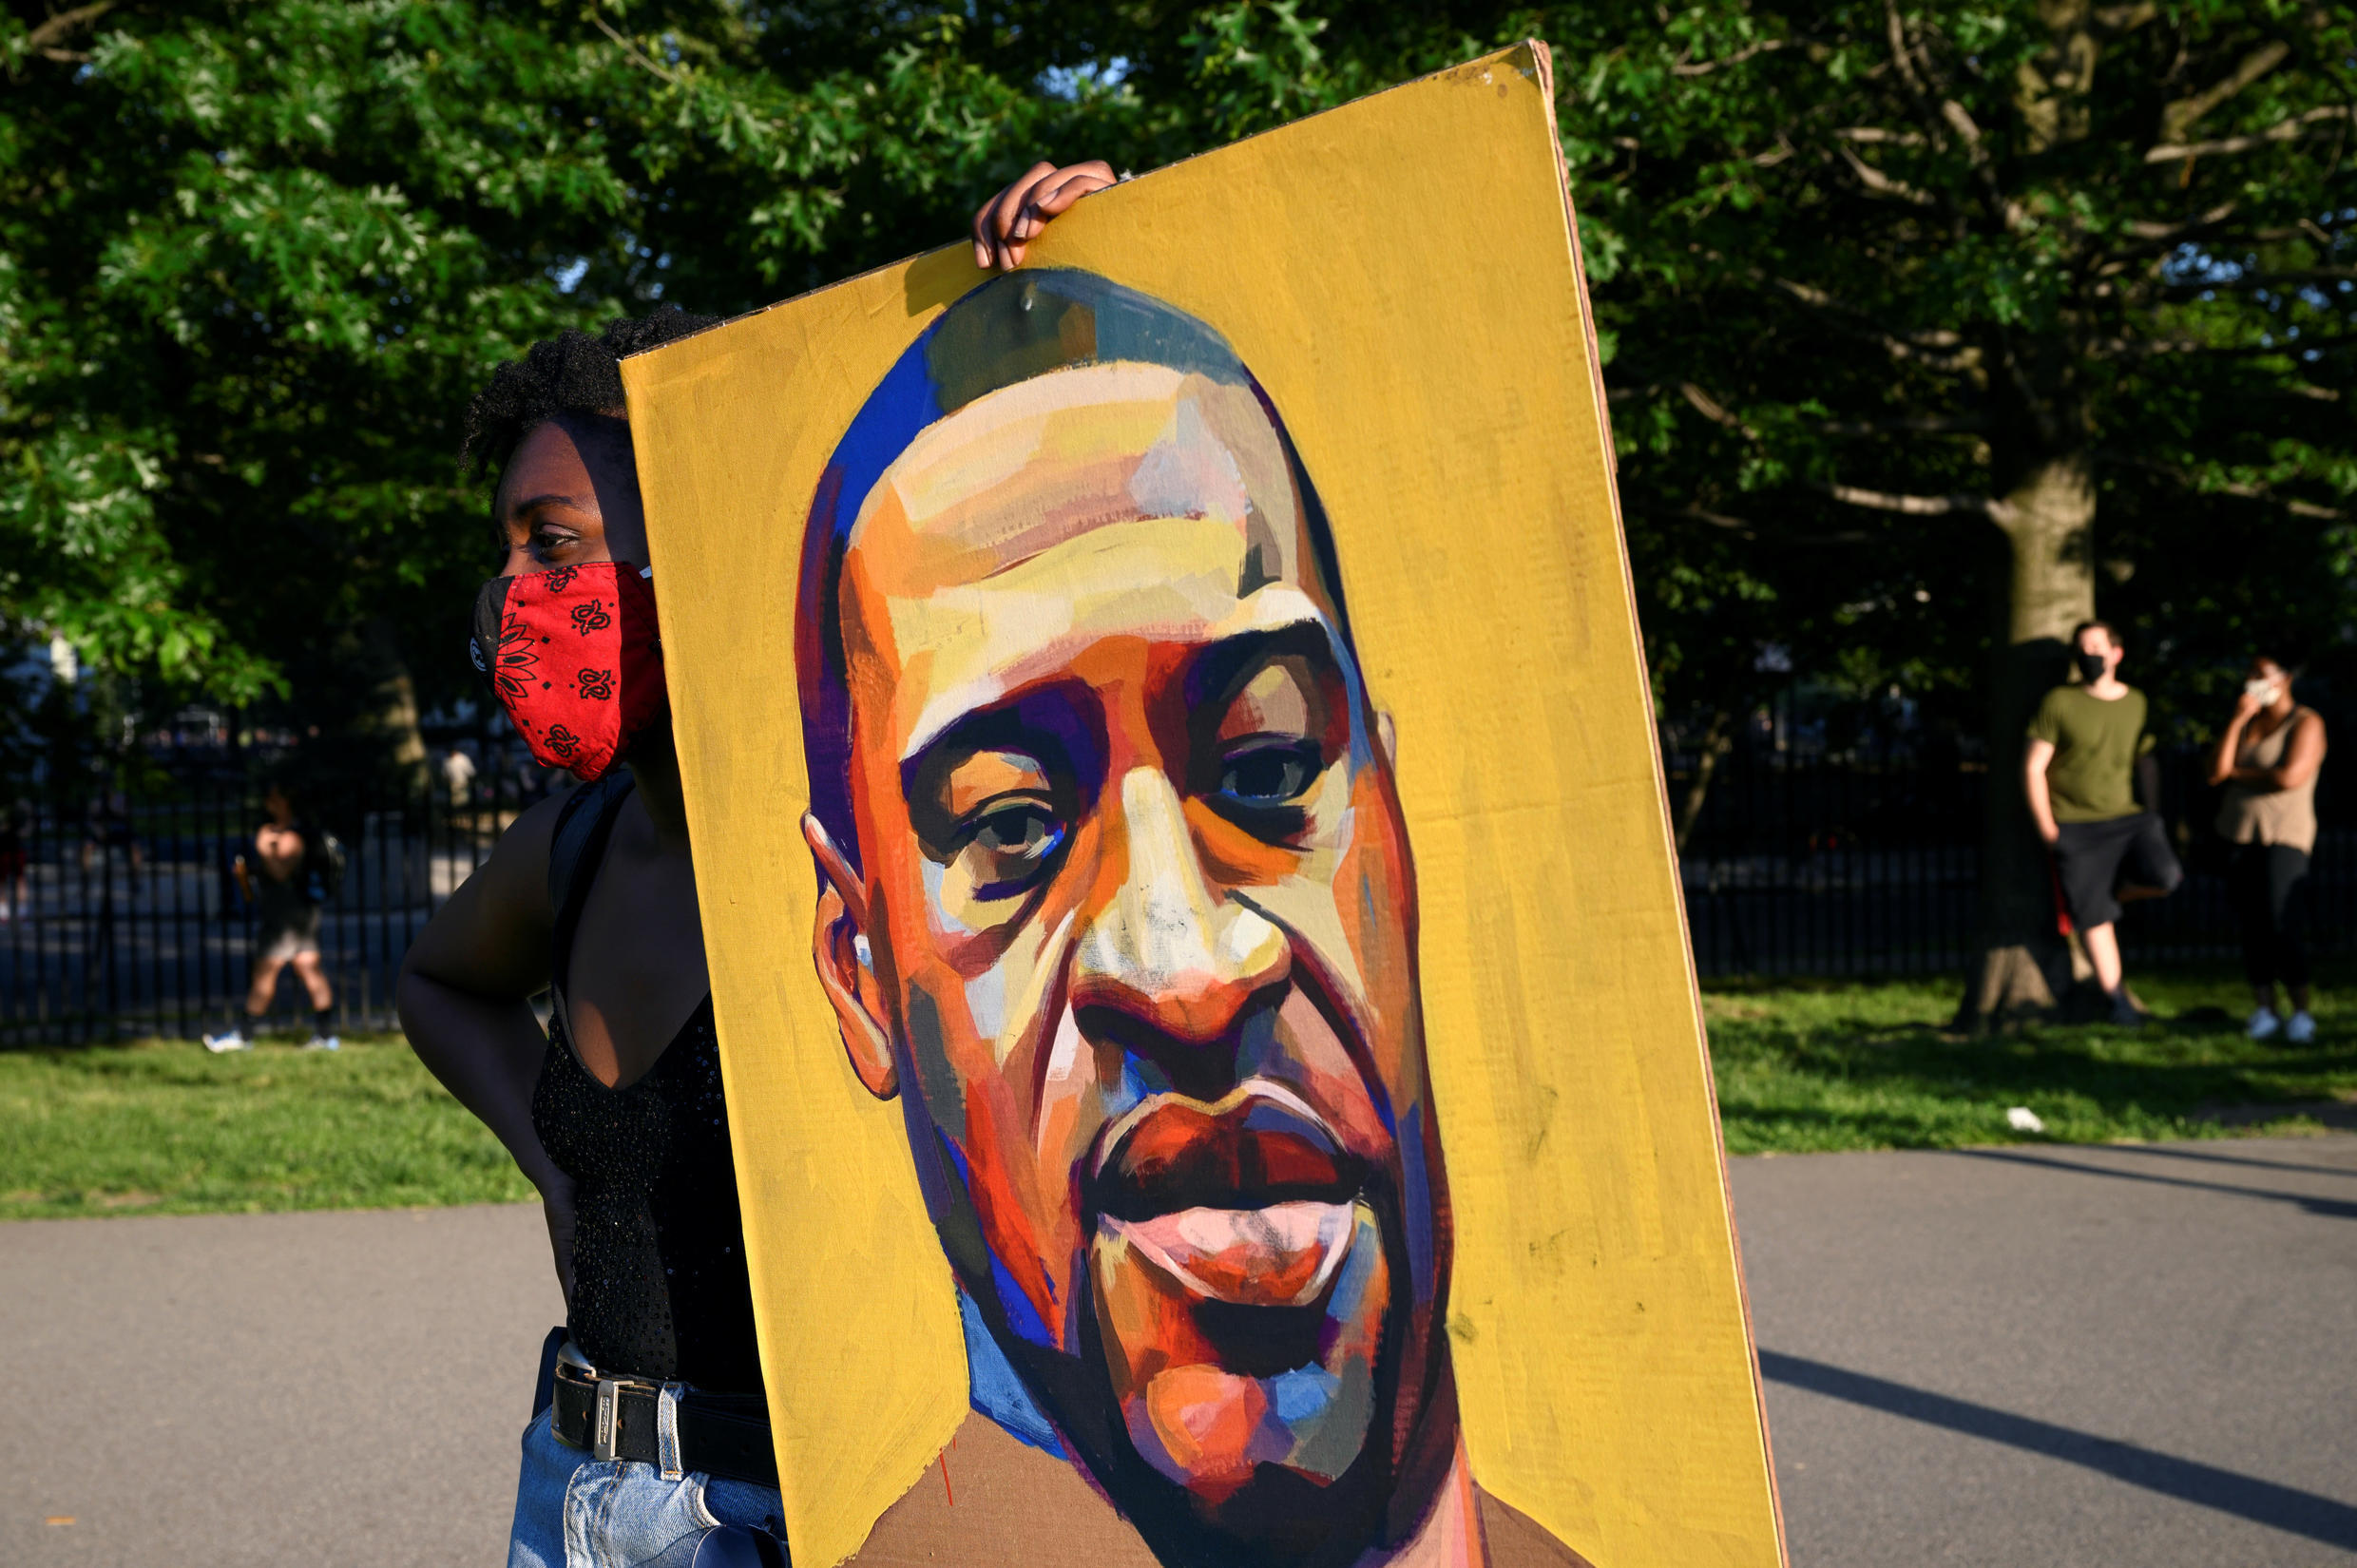 A demonstrator holds a painting depicting George Floyd during a protest against racism and police violence in New York on June 9, 2020.